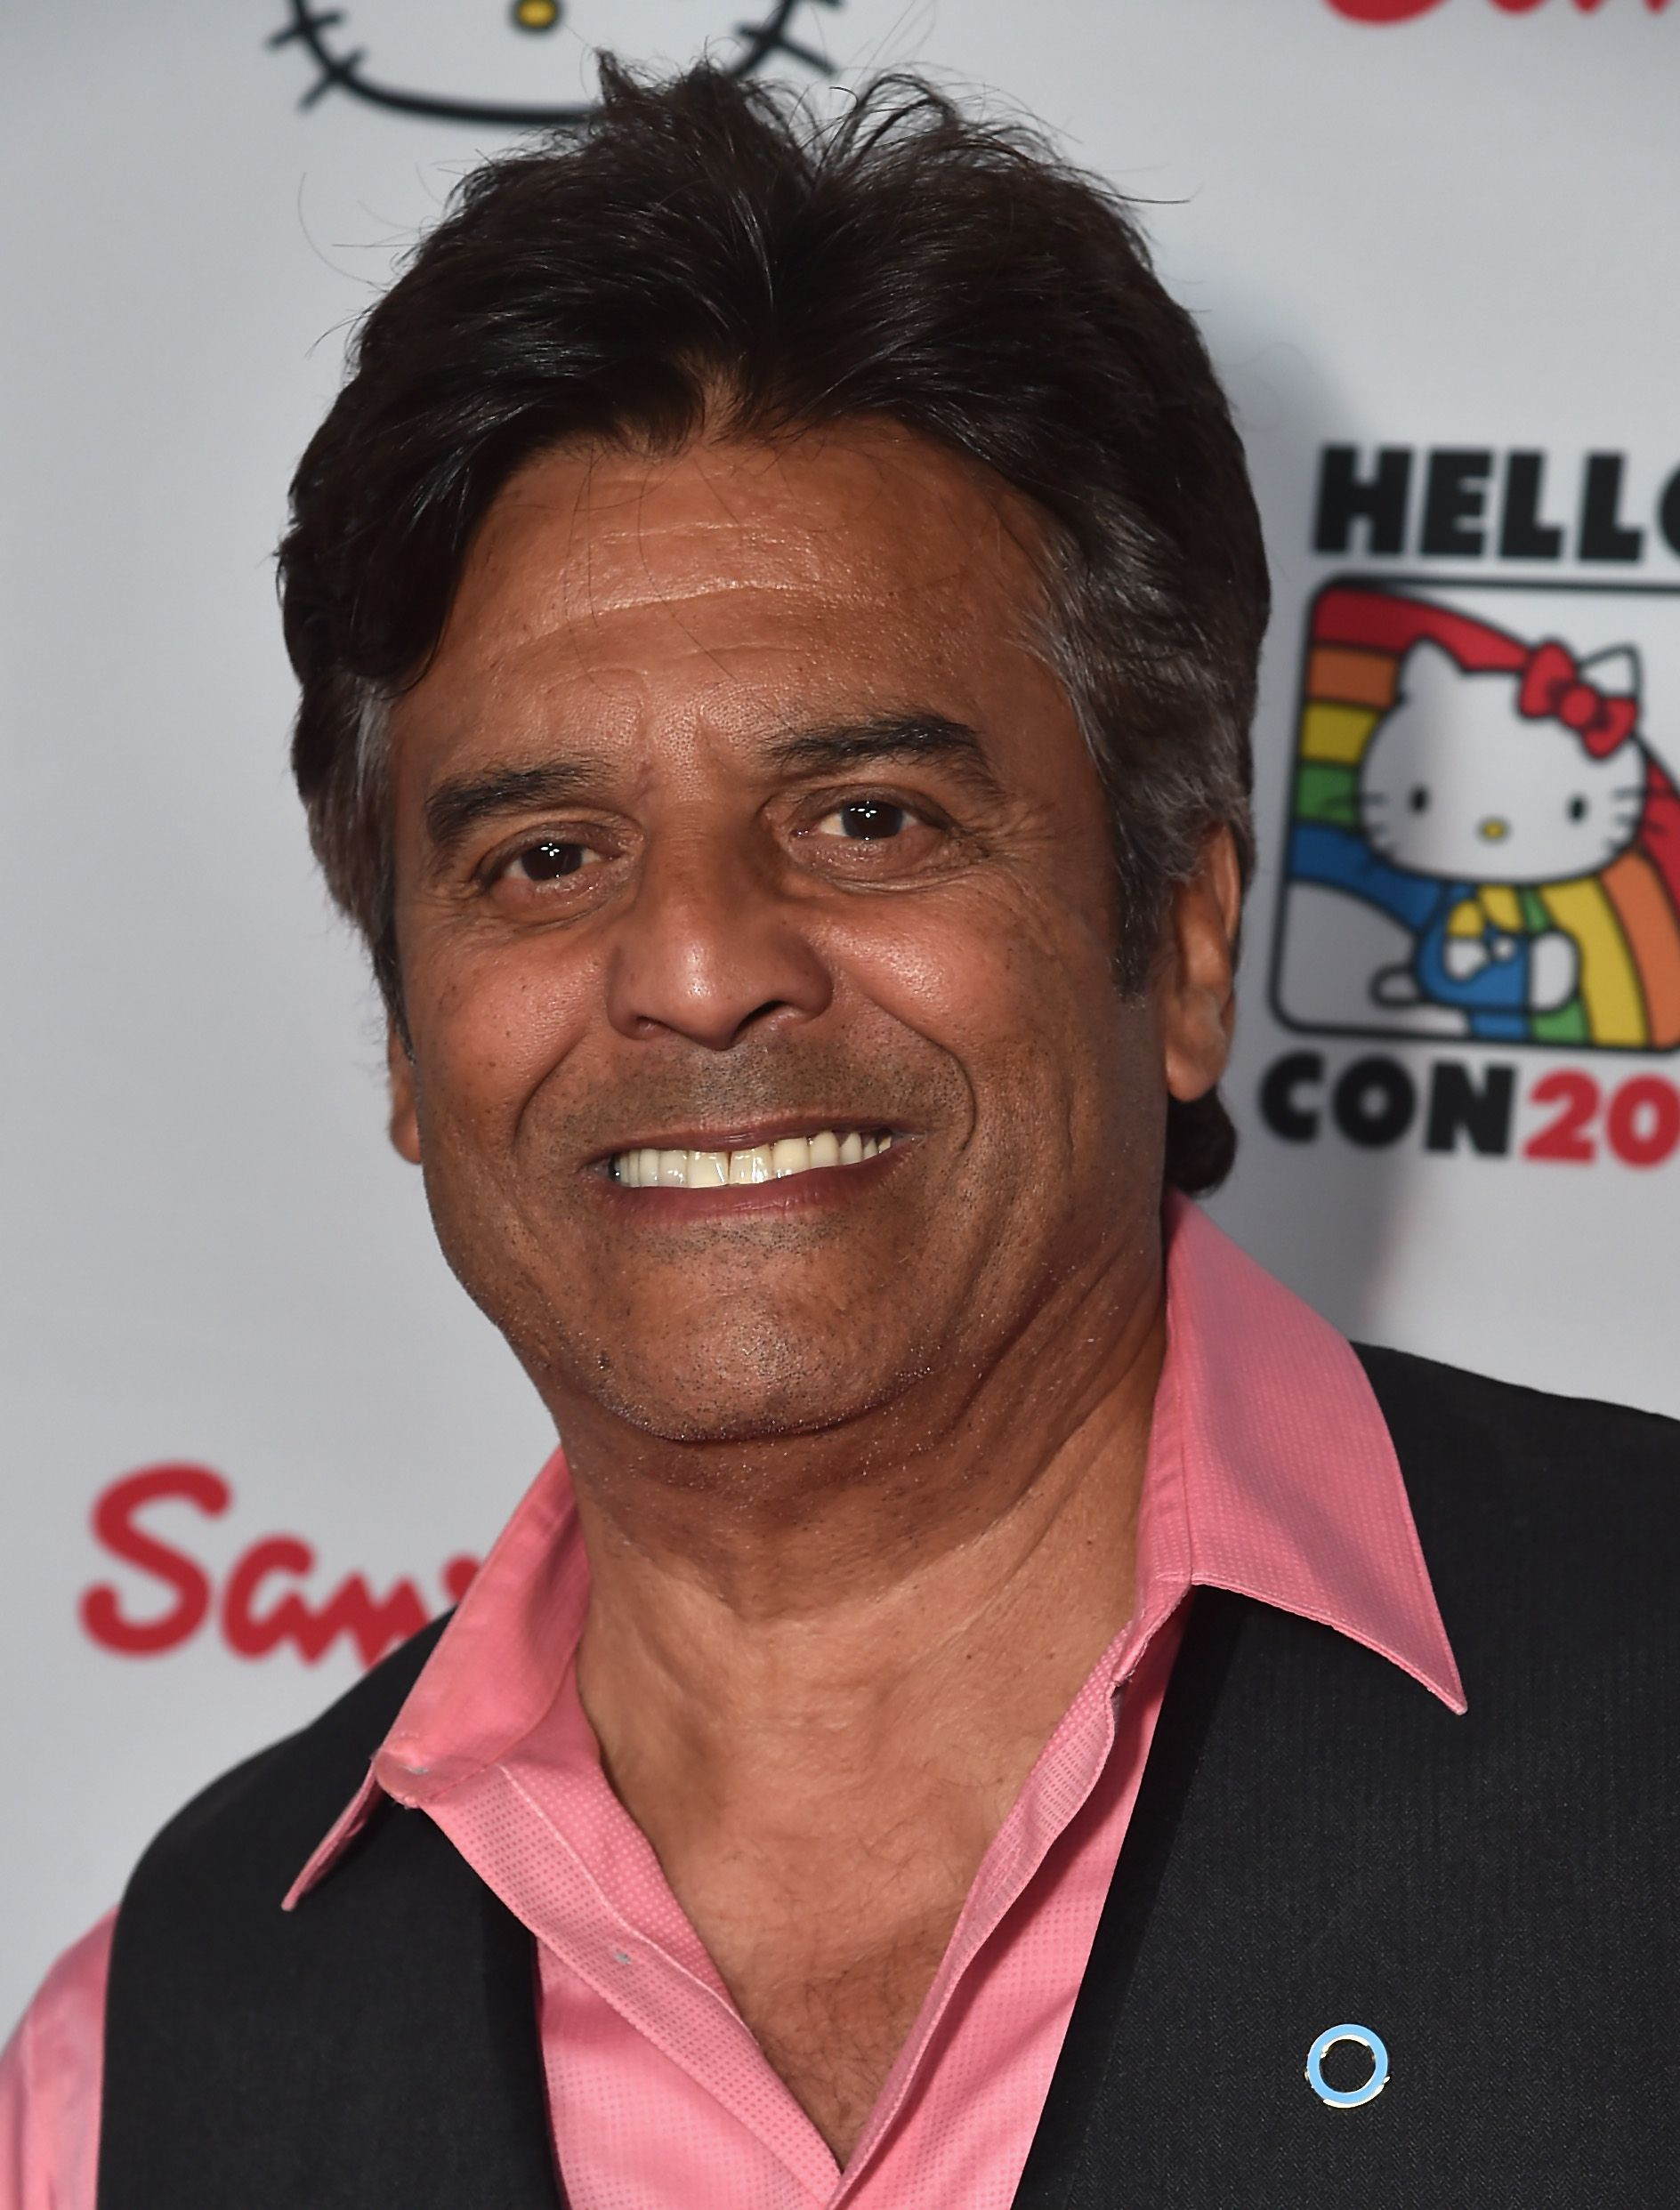 Actor Erik Estrada at to Hello Kitty Con 2014 Opening Night Party Co-hosted by Target on October 29, 2014 | Photo: Getty Images